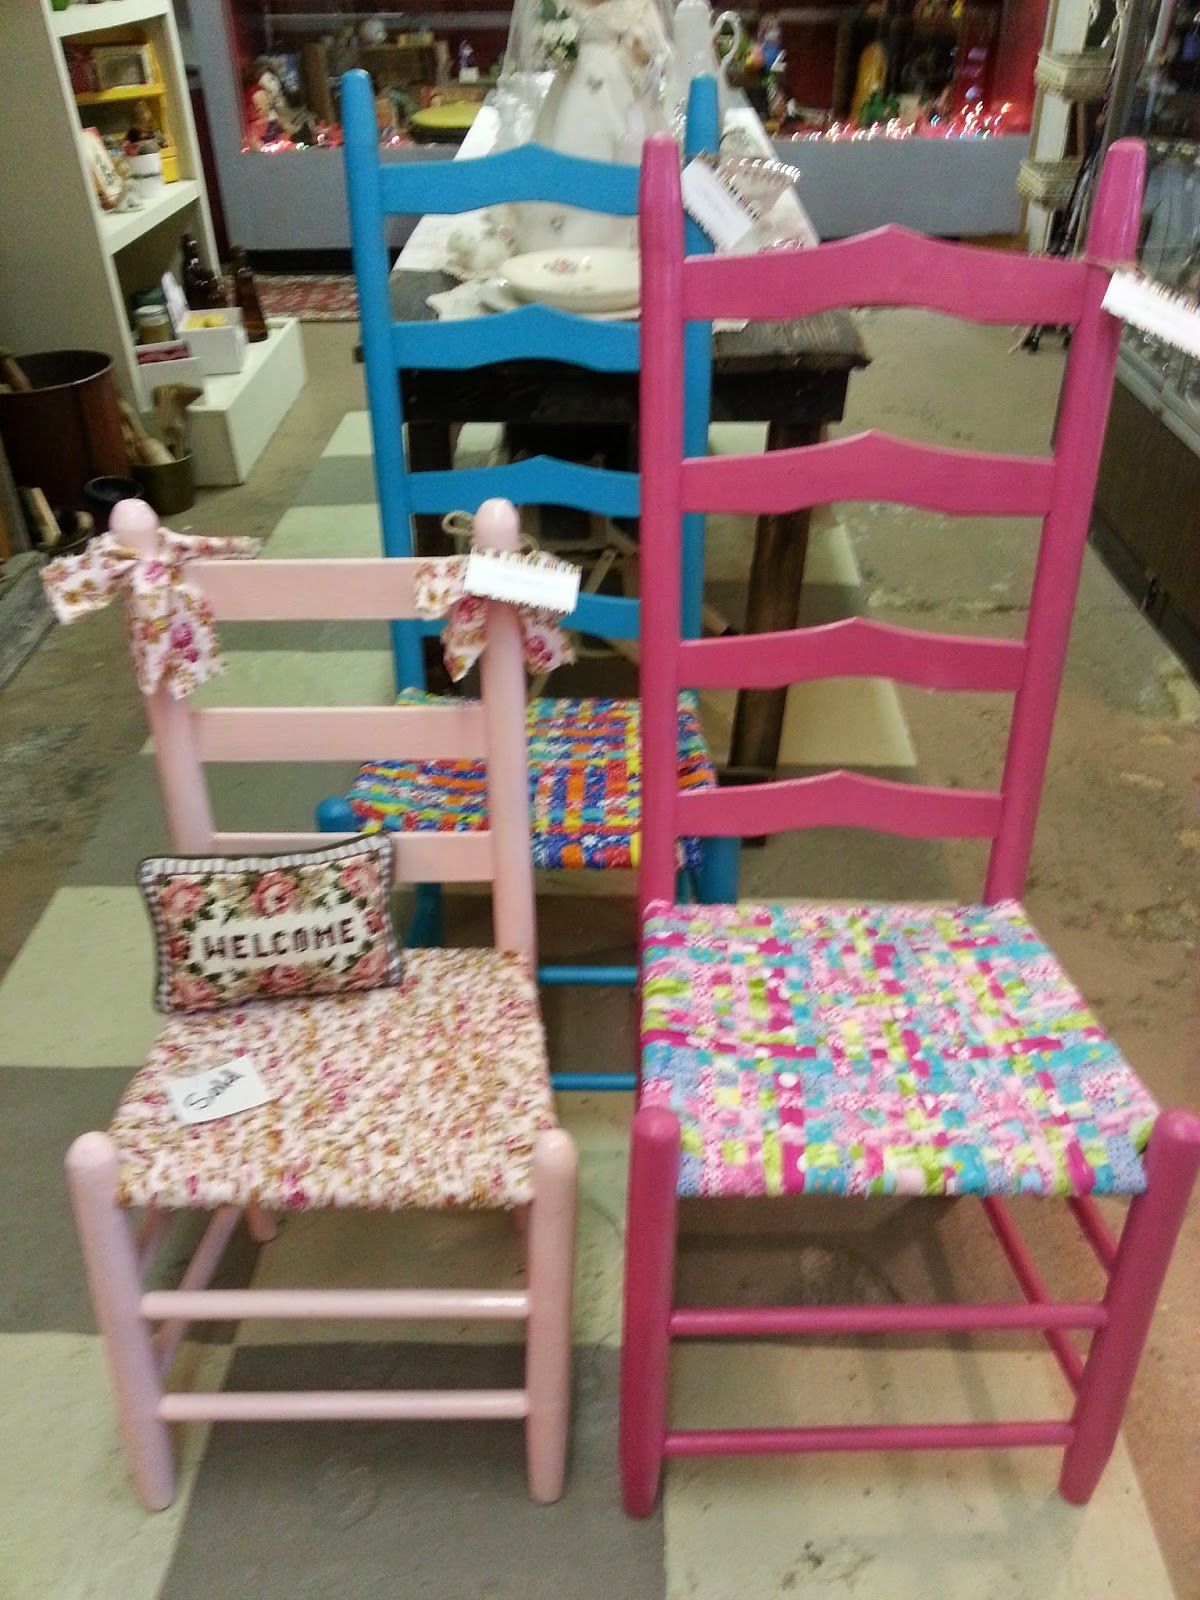 DIY: How To Weave A Fabric Chair Seat   Lots Of Info On Choosing The Right  Fabric, Cutting The Strips, What Type Of Chair To Use And How To Create A  Fabric ...